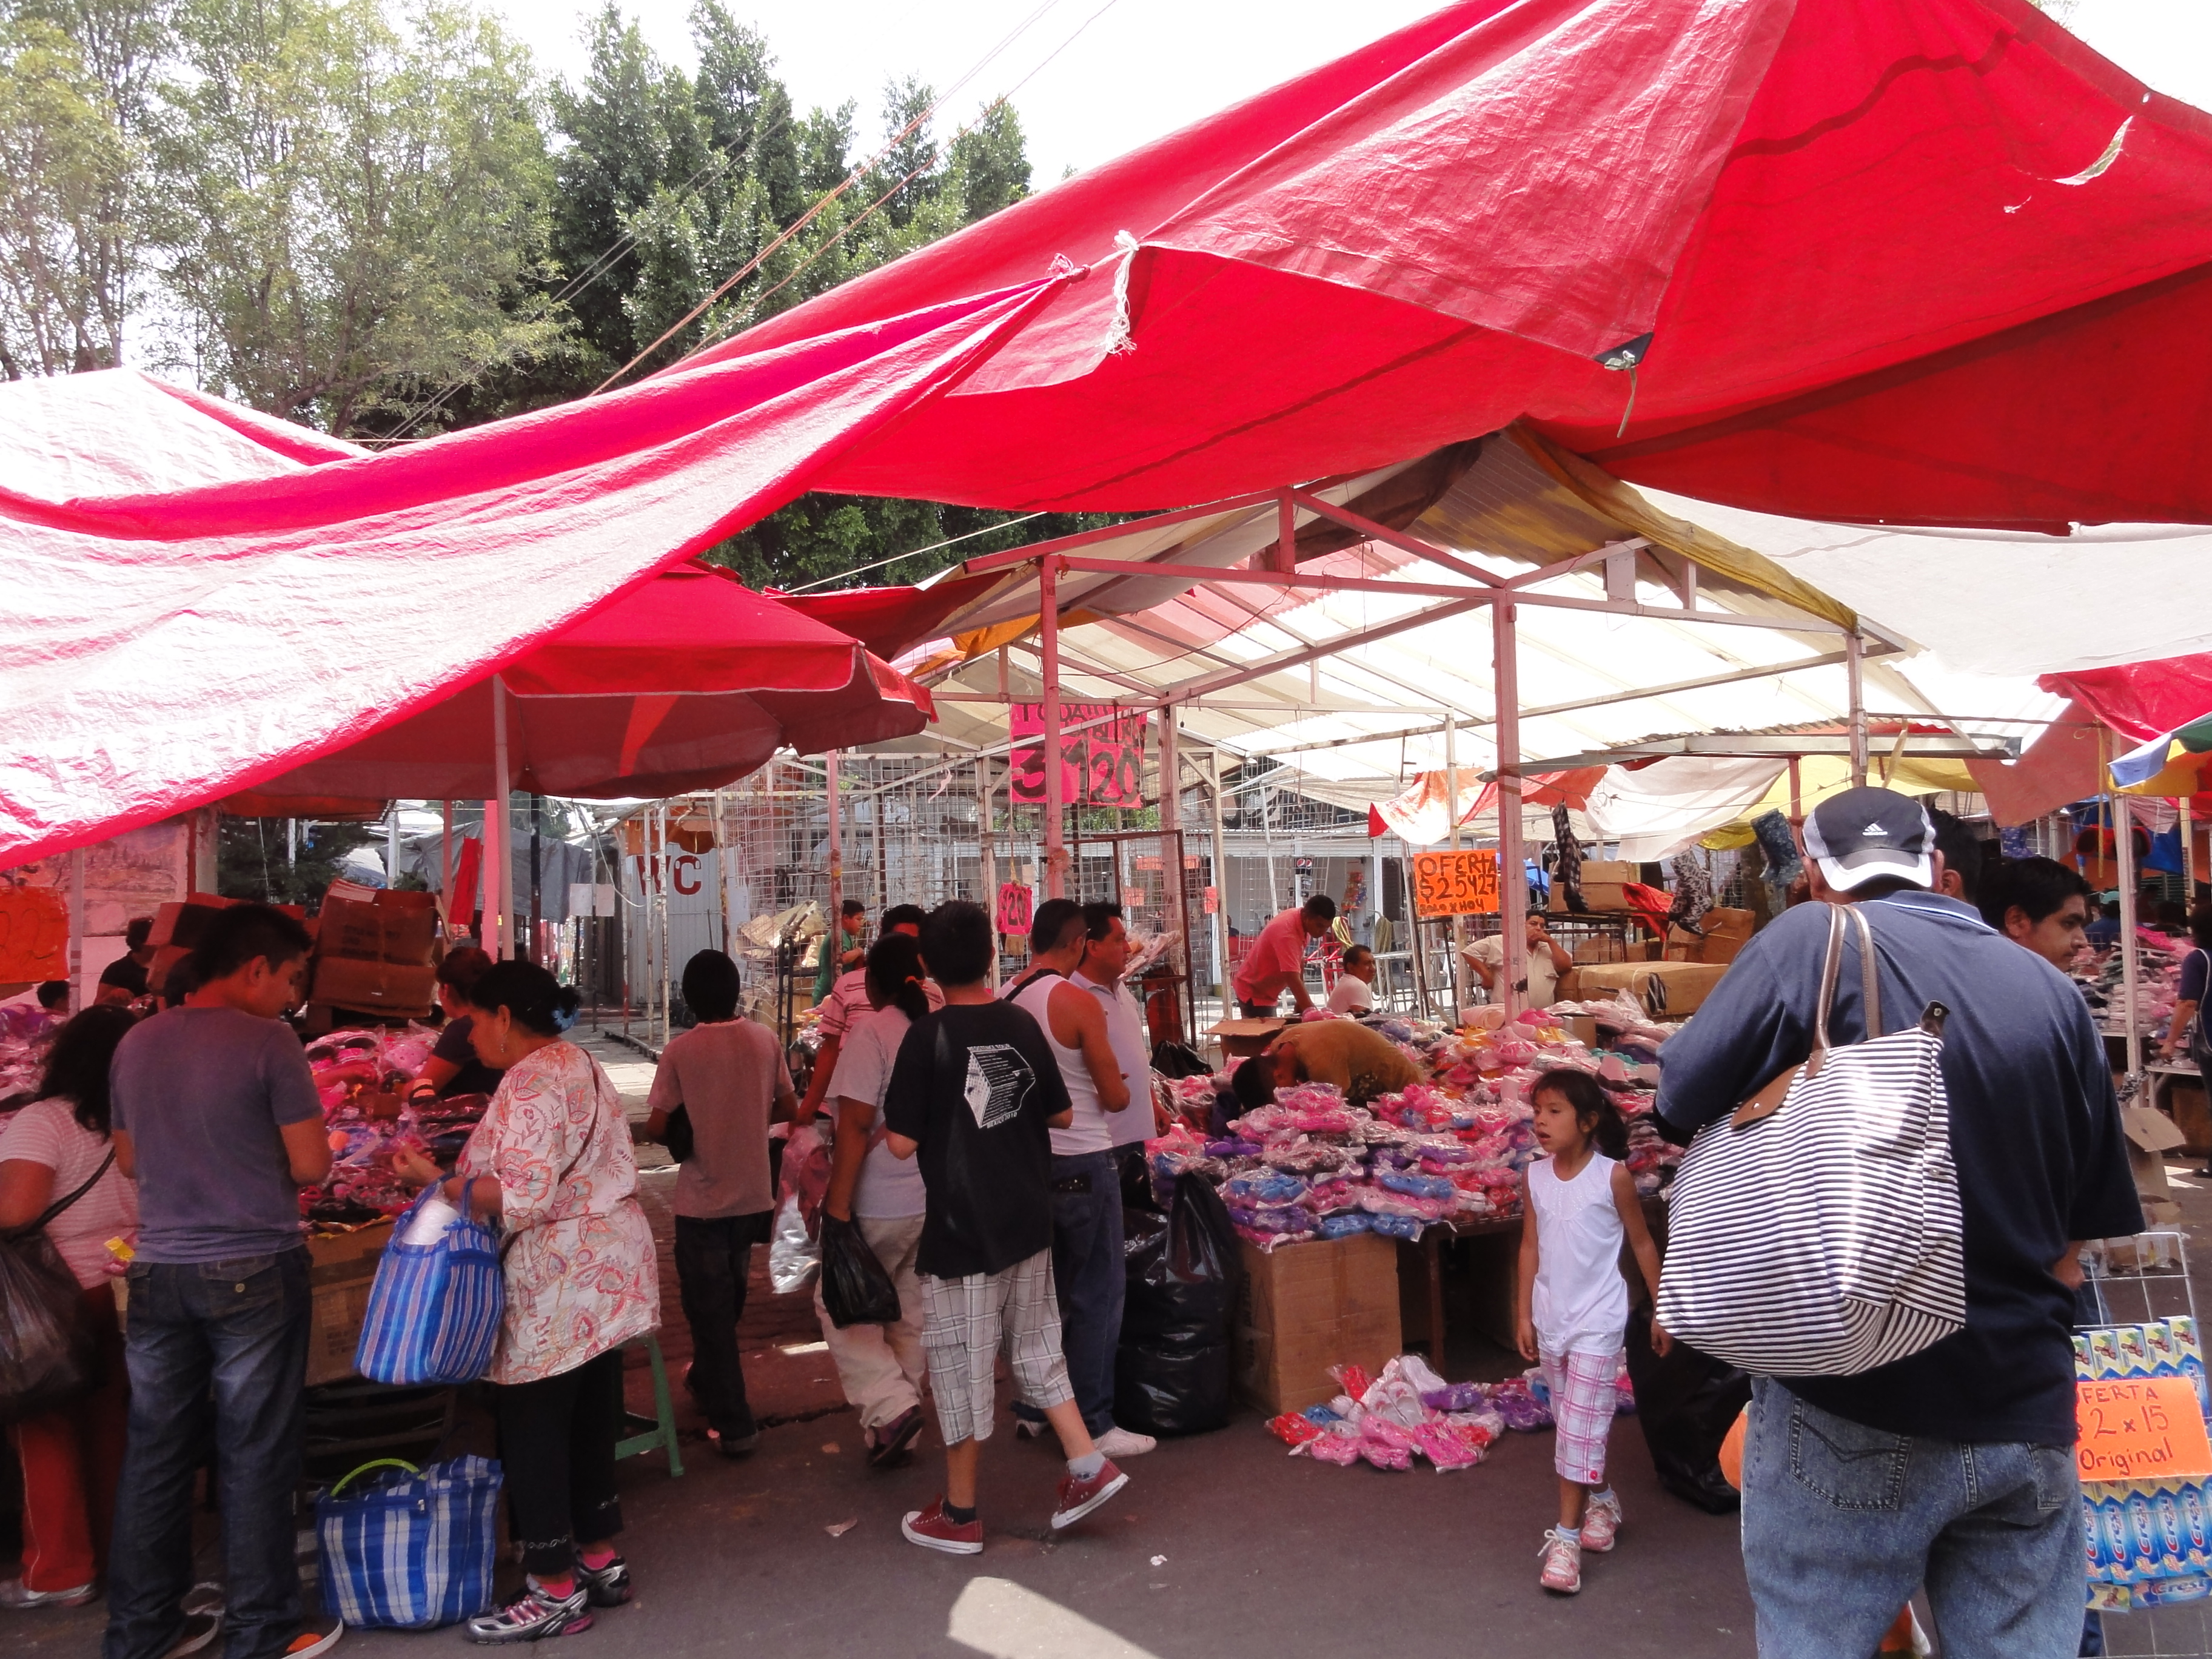 Tianguis Of Tarps In Mexico City Favel Issues